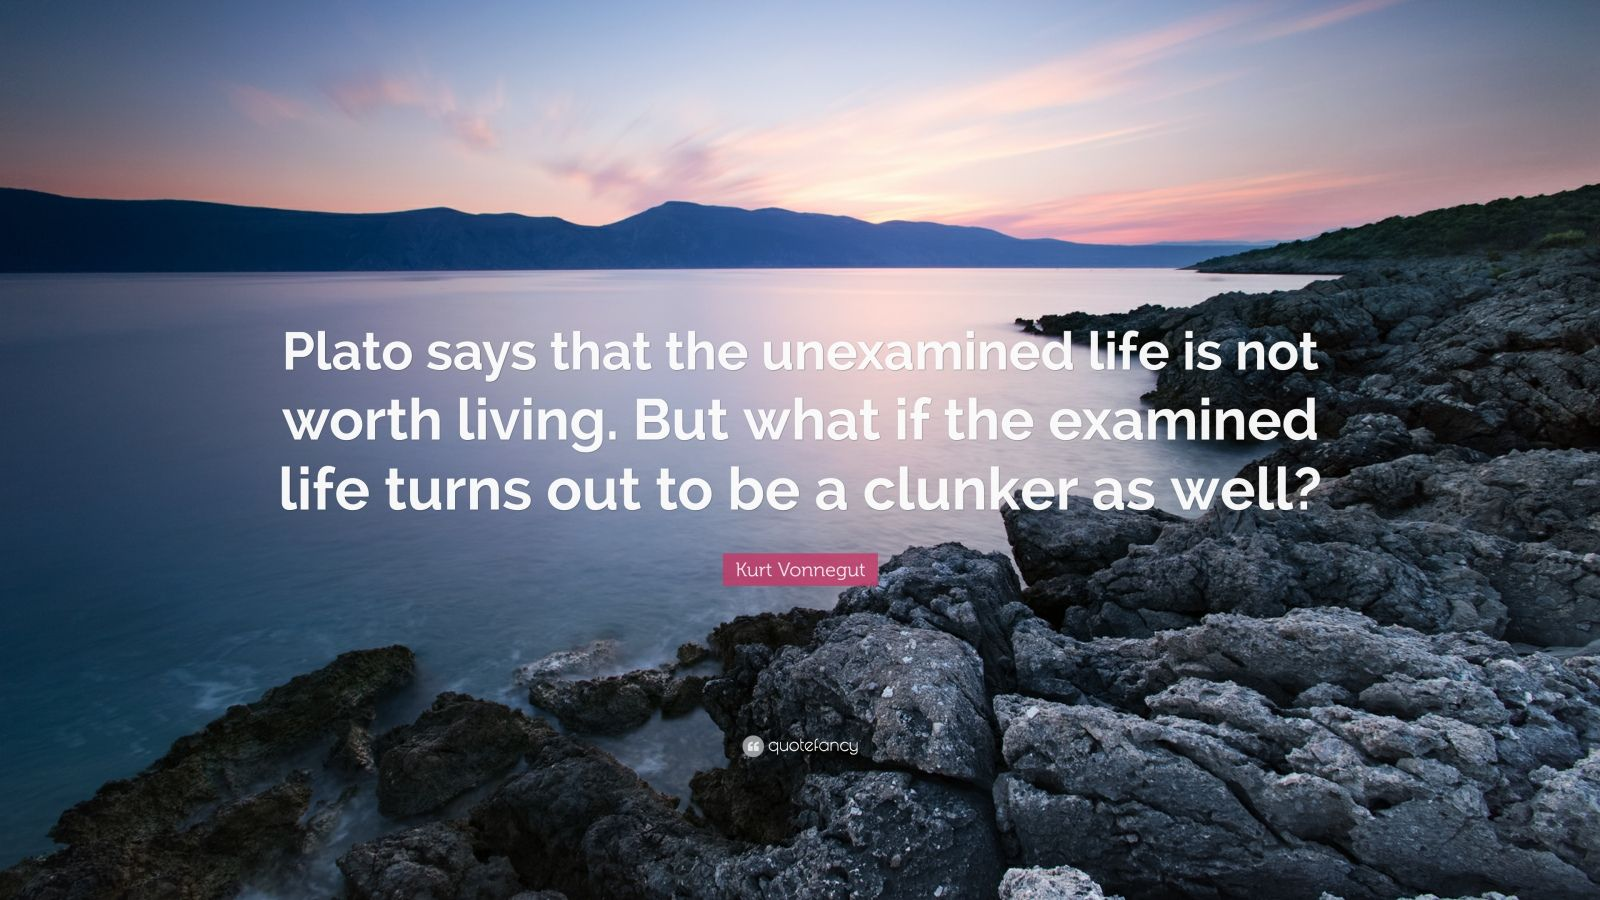 "Kurt Vonnegut Quote: ""Plato says that the unexamined life is not worth living. But what if the examined life turns out to be a clunker as well?"""